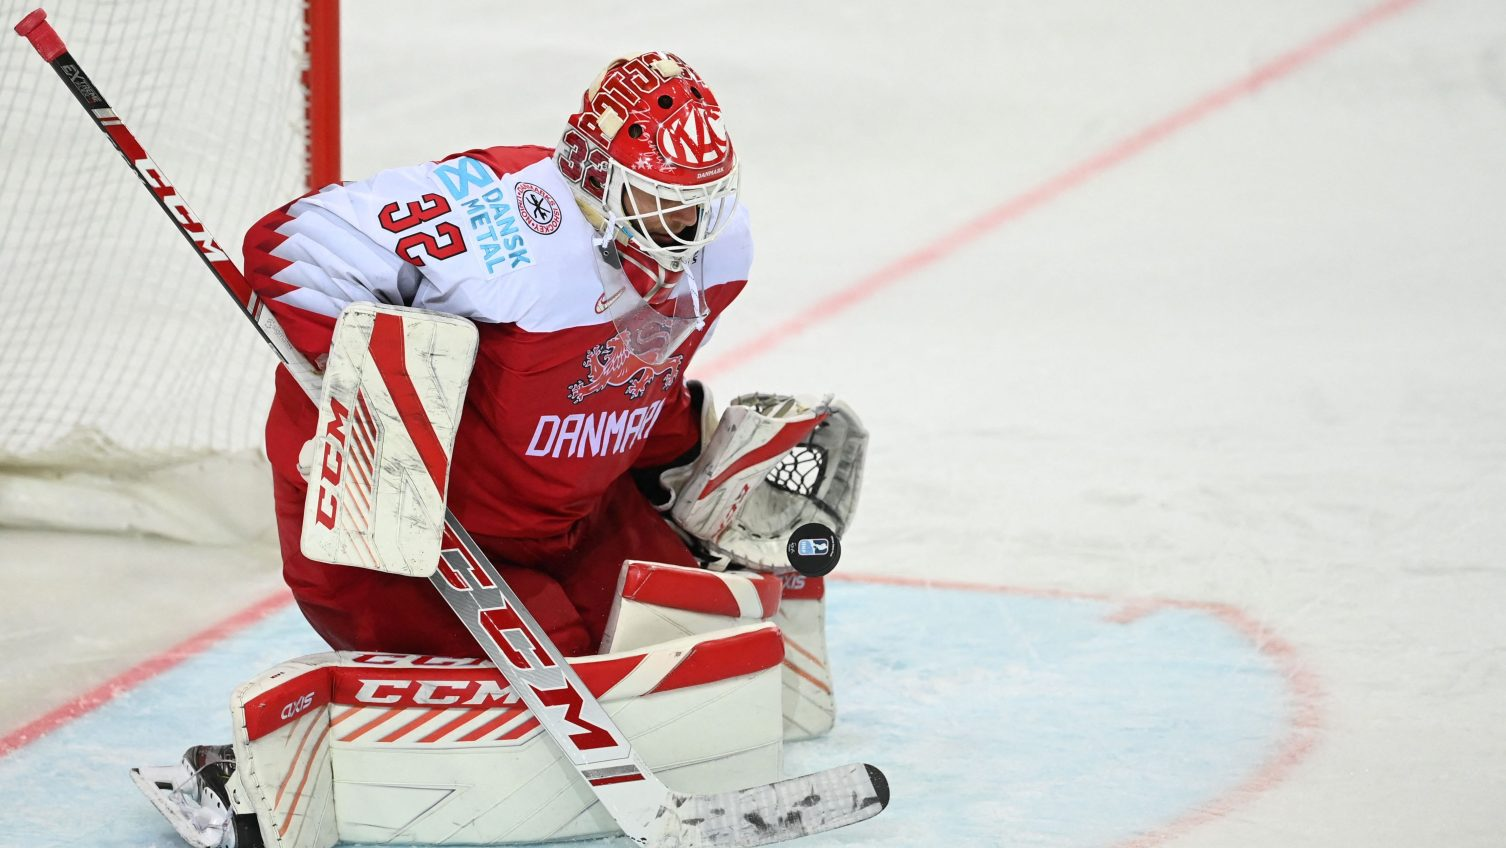 Denmark qualifies for men's Olympic hockey tournament for first time in 75 years